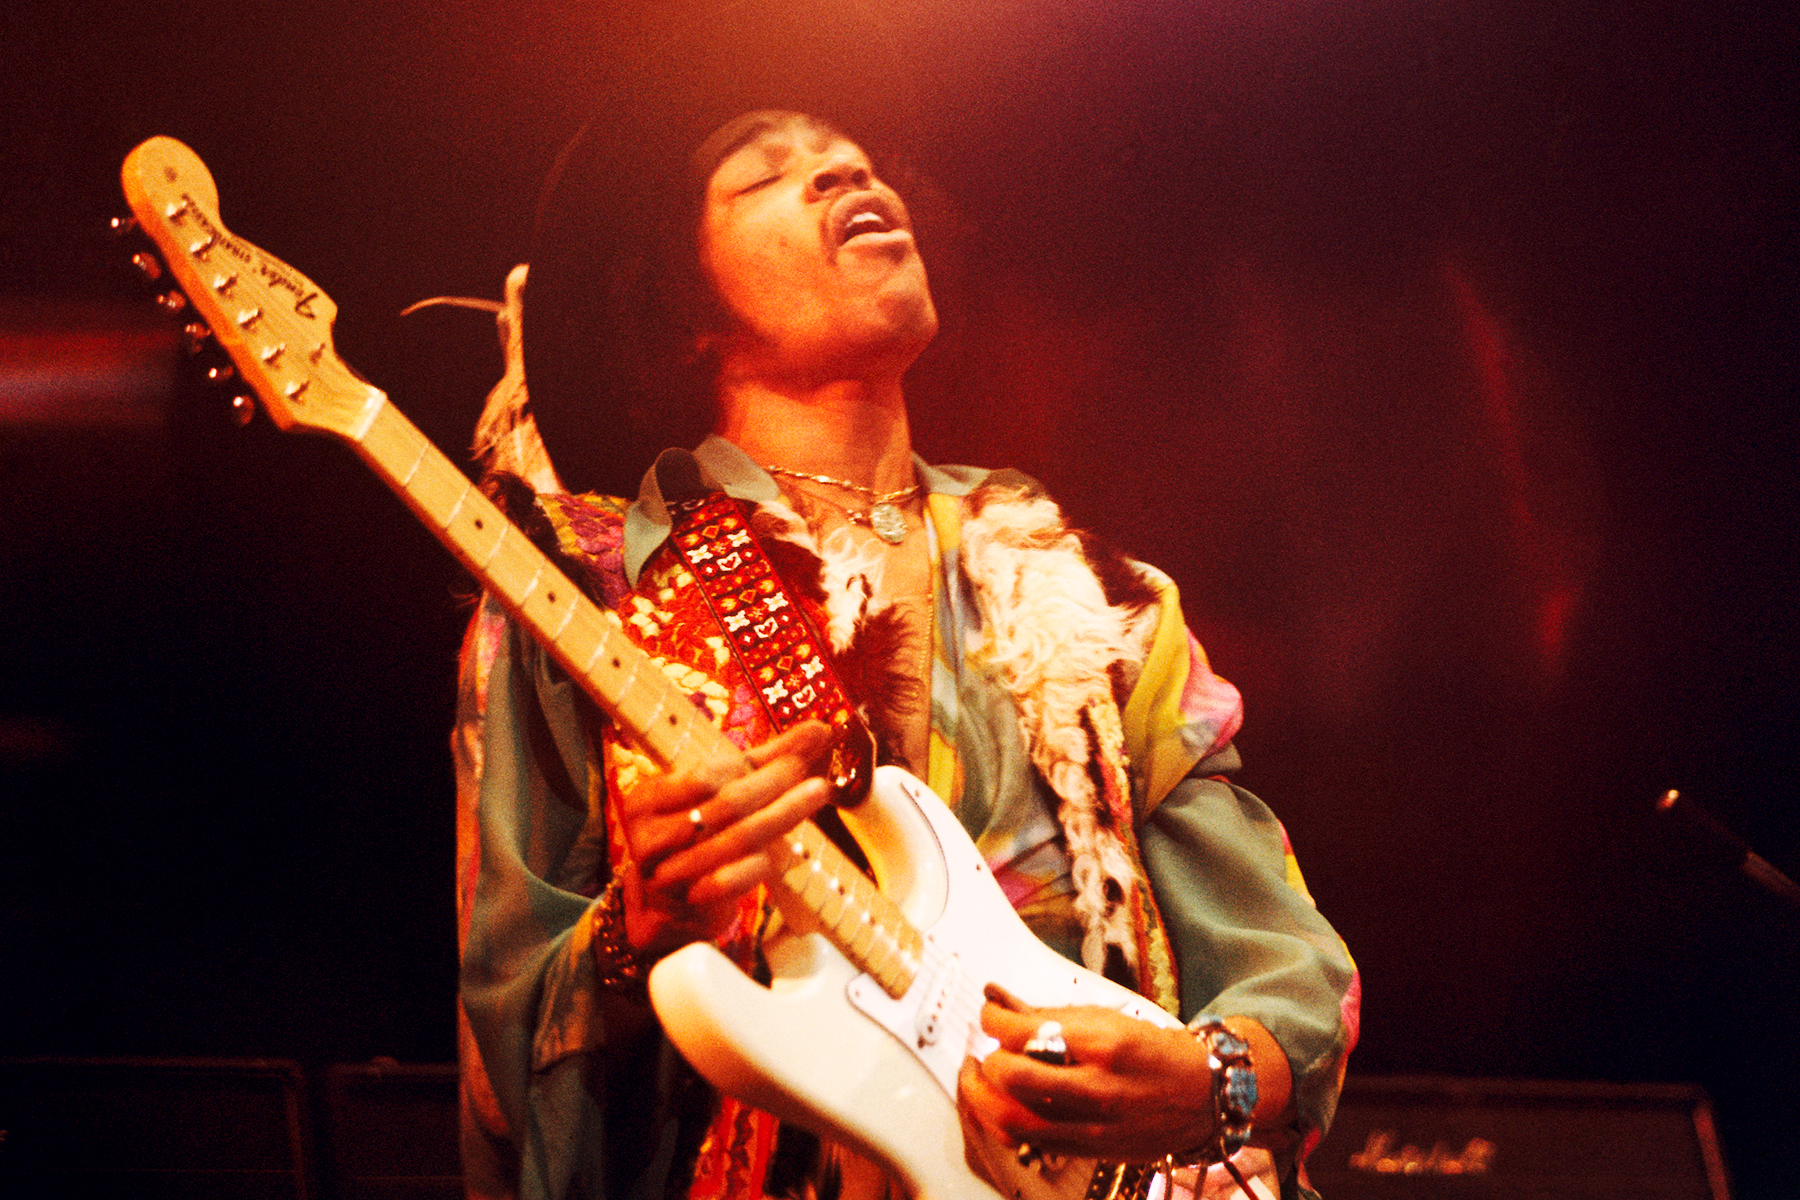 Jimi Hendrix's 'Electric Ladyland' Gets Massive Reissue for 50th Anniversary